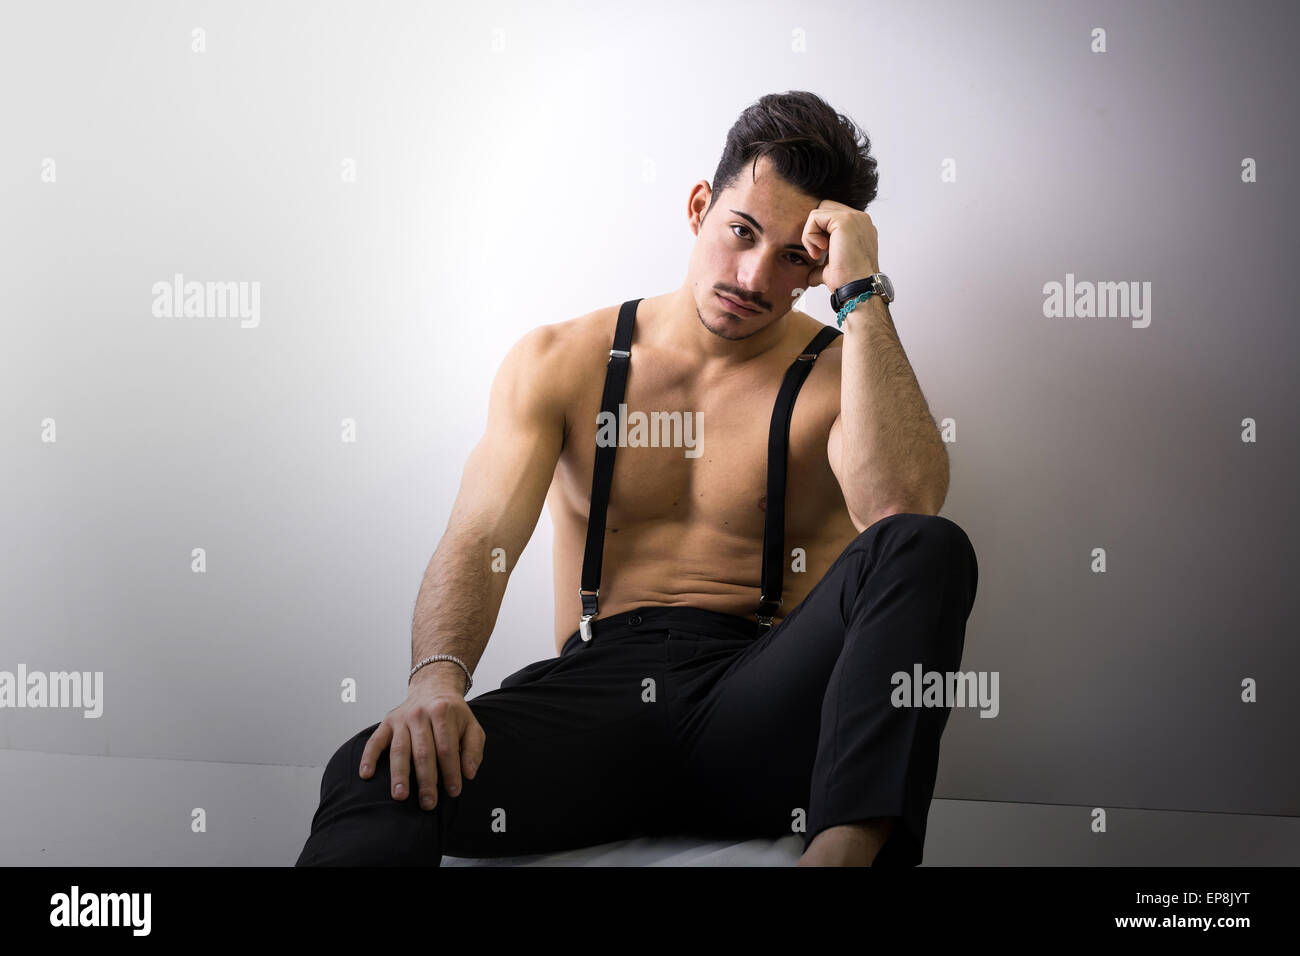 Shirtless athletic young man with suspenders and black pants sitting on floor, looking at camera - Stock Image